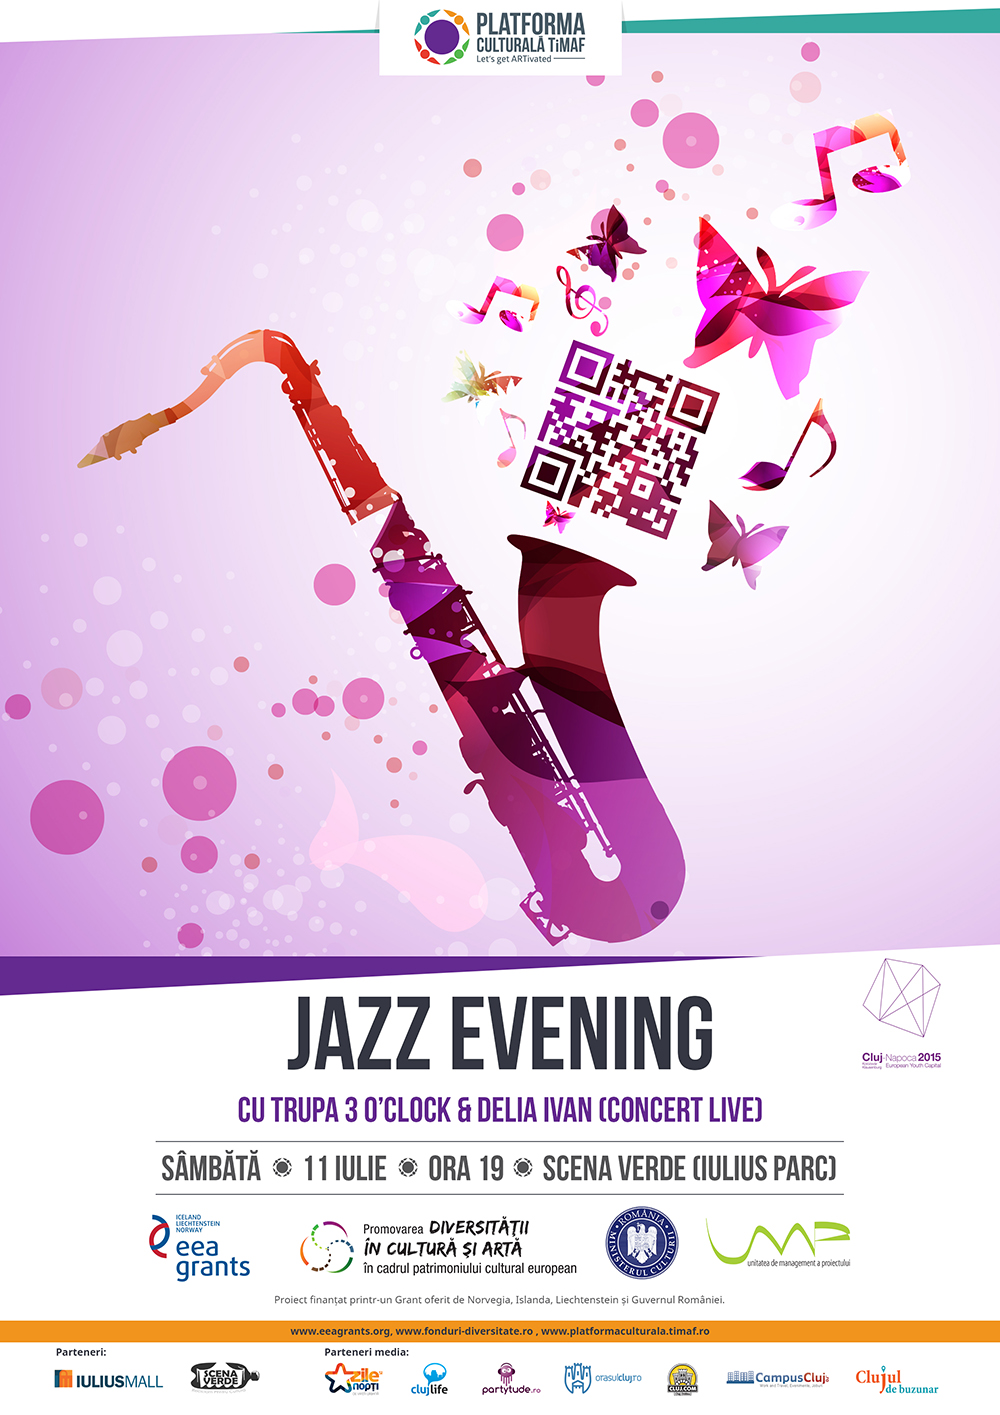 Jazz Evening @ Scena Verde – Iulius Parc